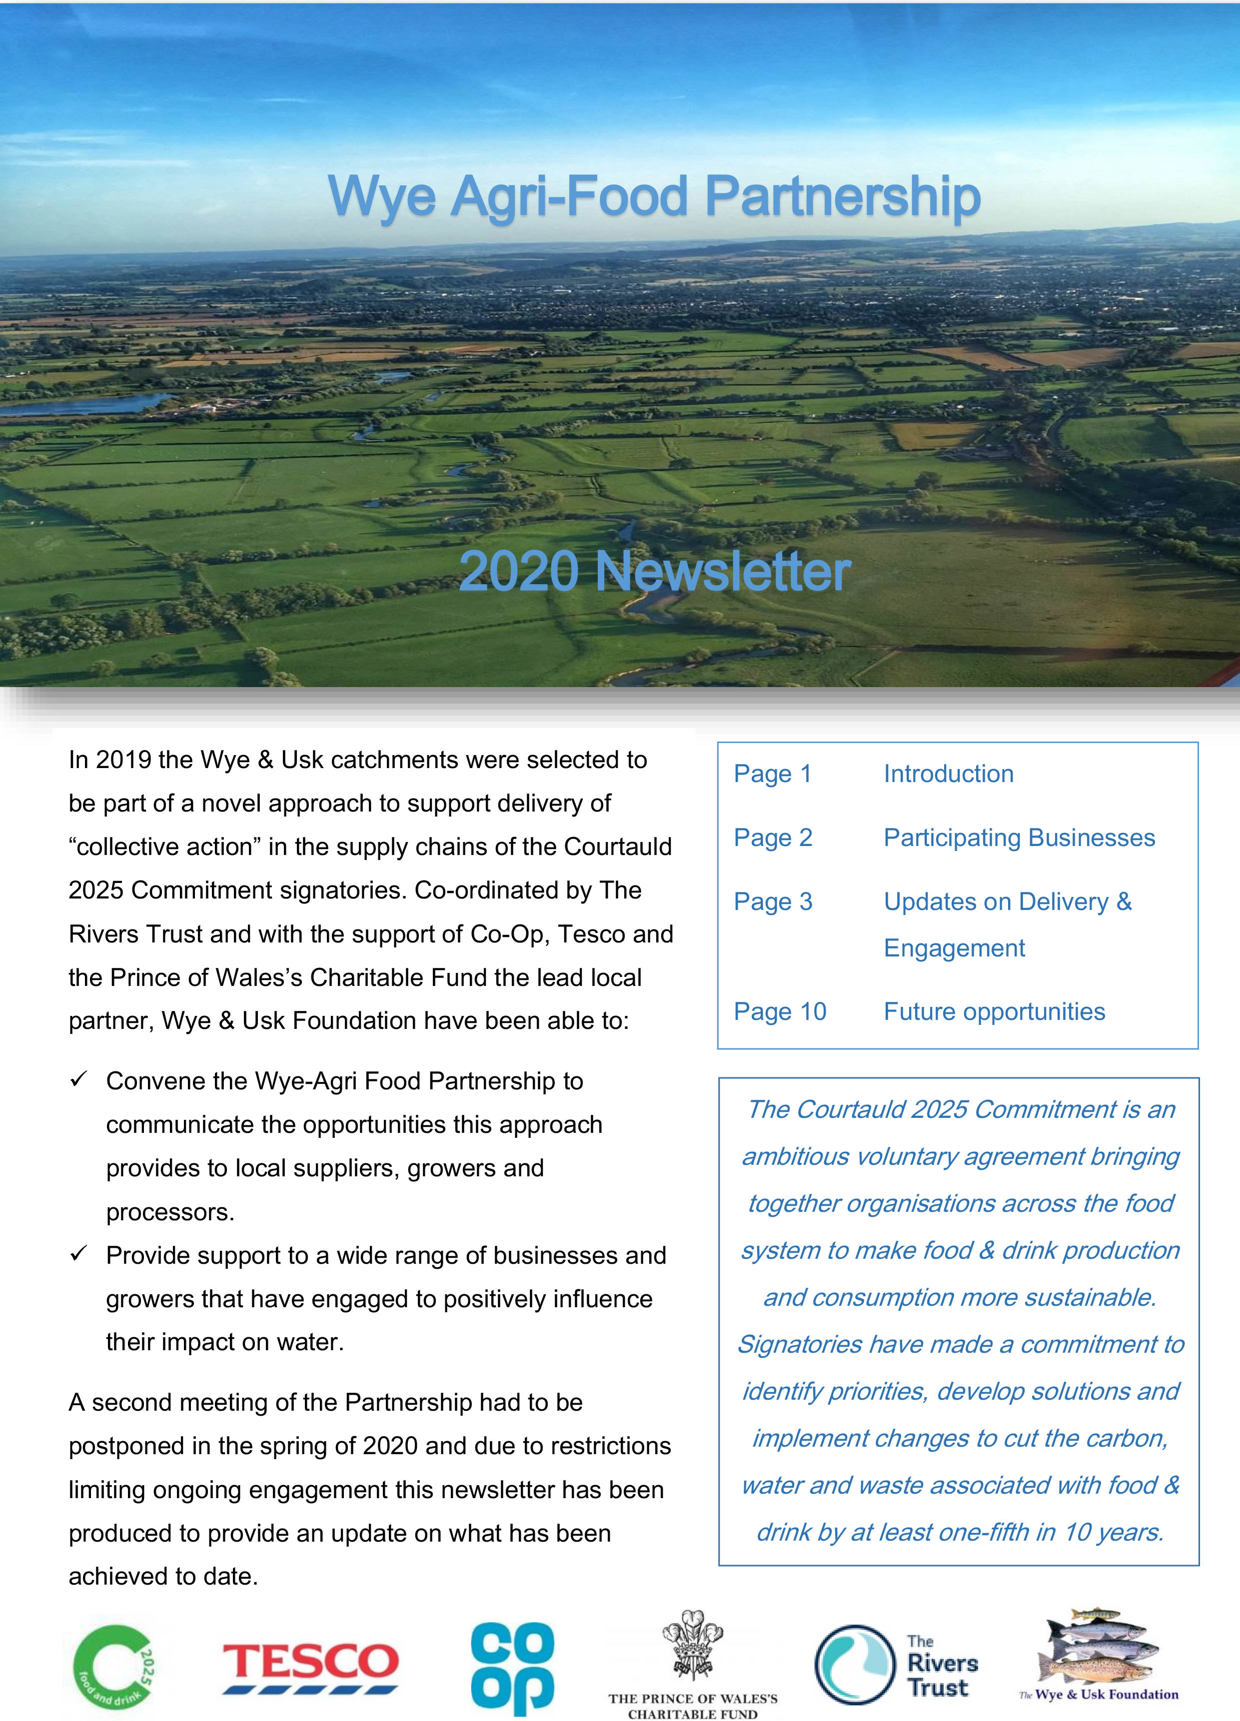 The 2020 Wye Agri Food Partnership Newsletter